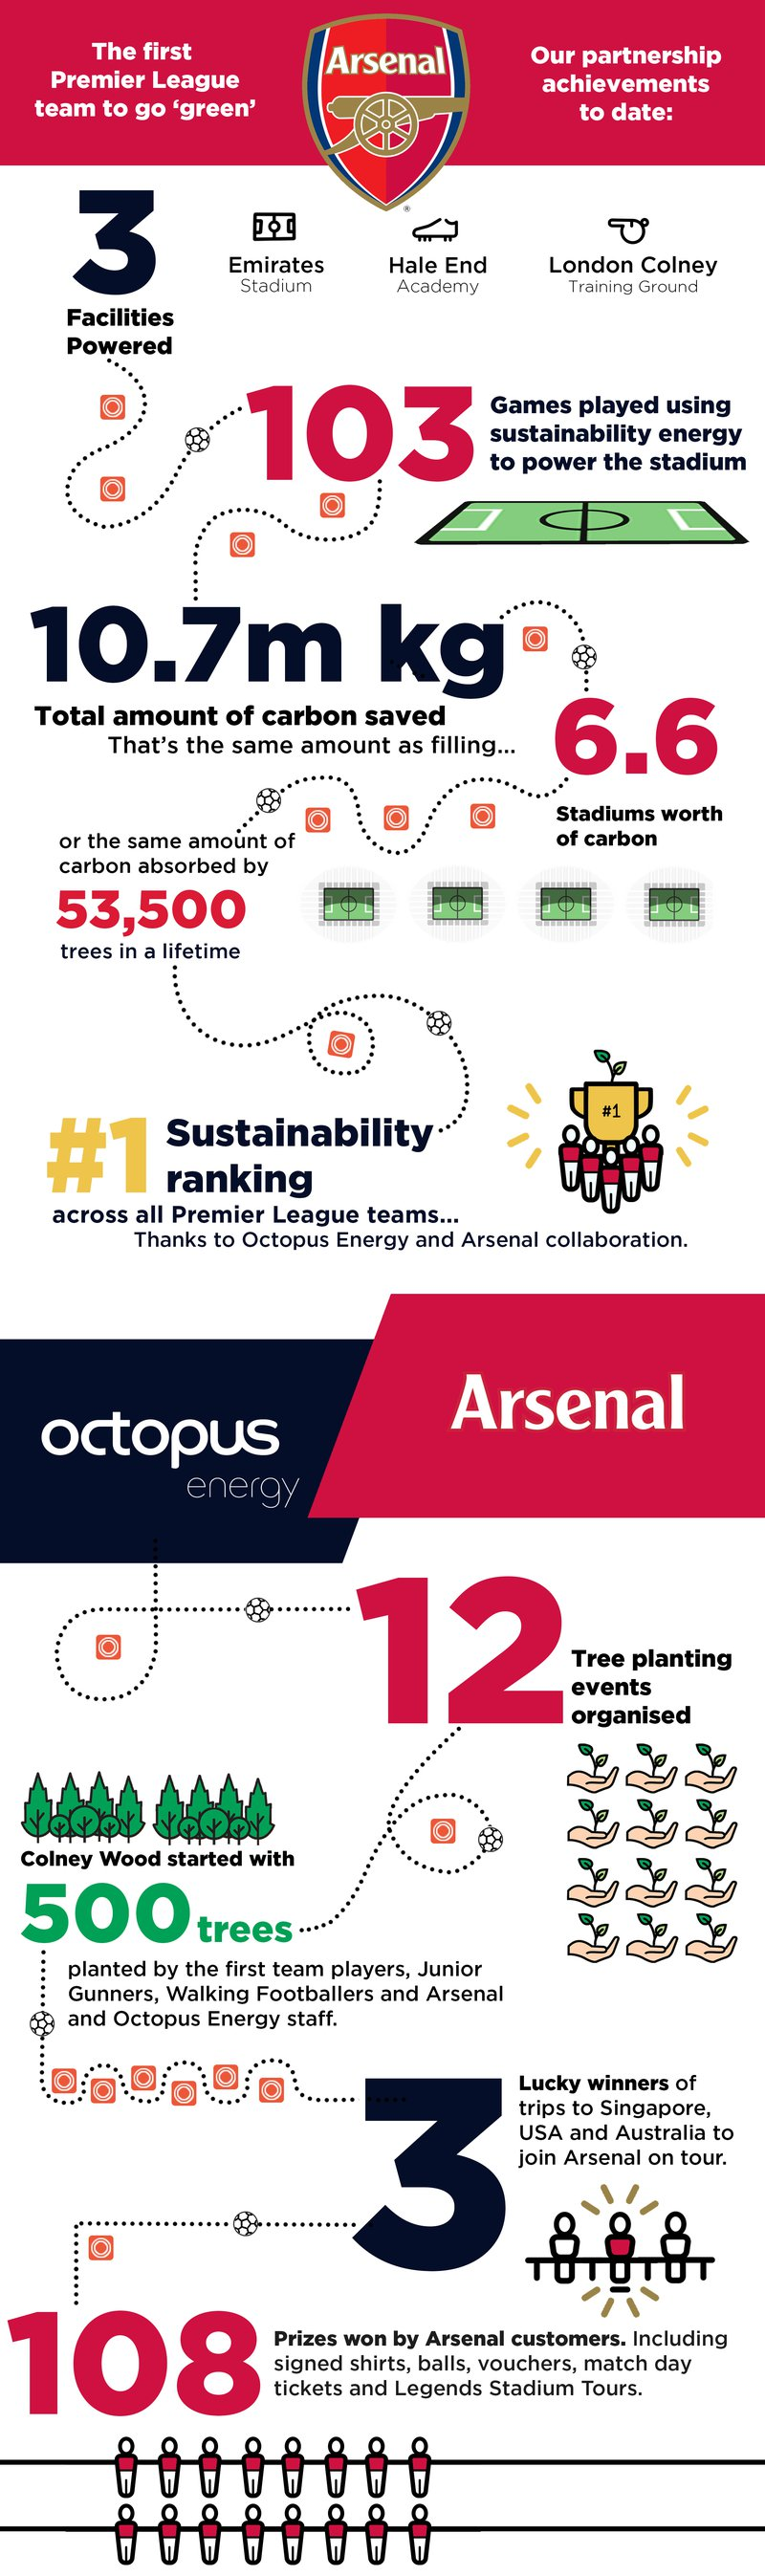 An infographic show the environmental work Arsenal have done with Octopus Energy